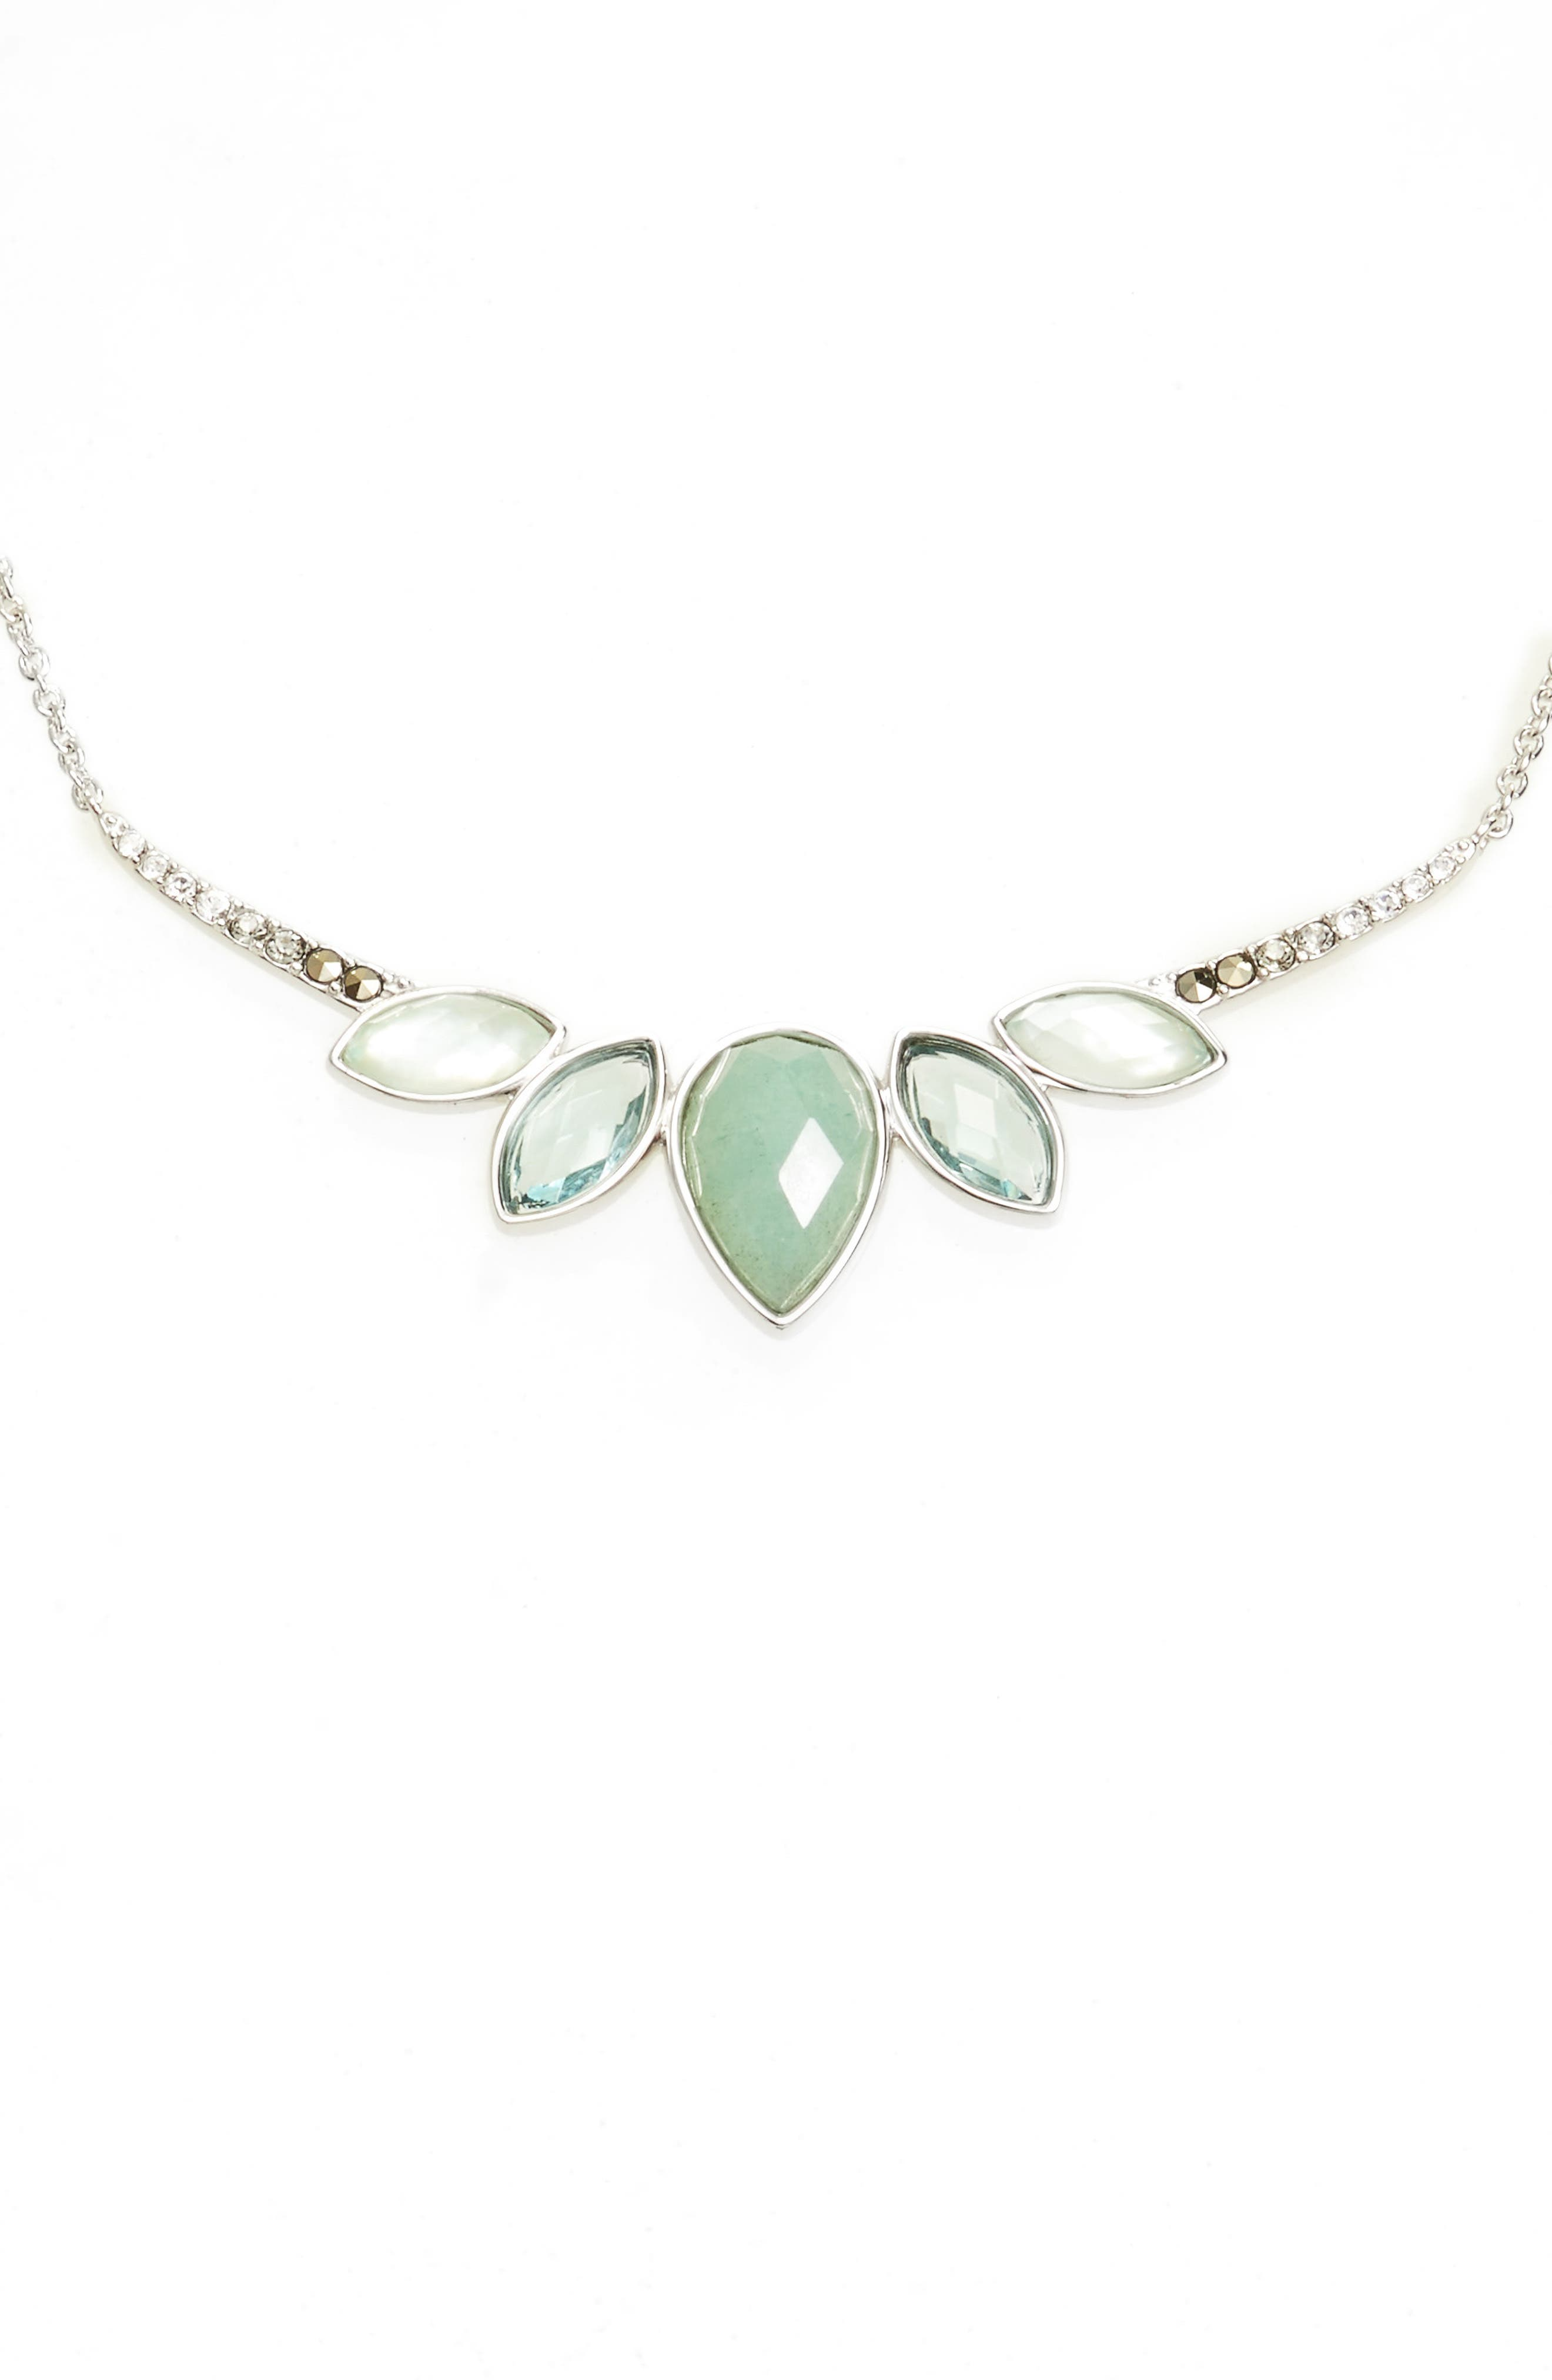 Lakeside Crystal Frontal Necklace,                         Main,                         color,